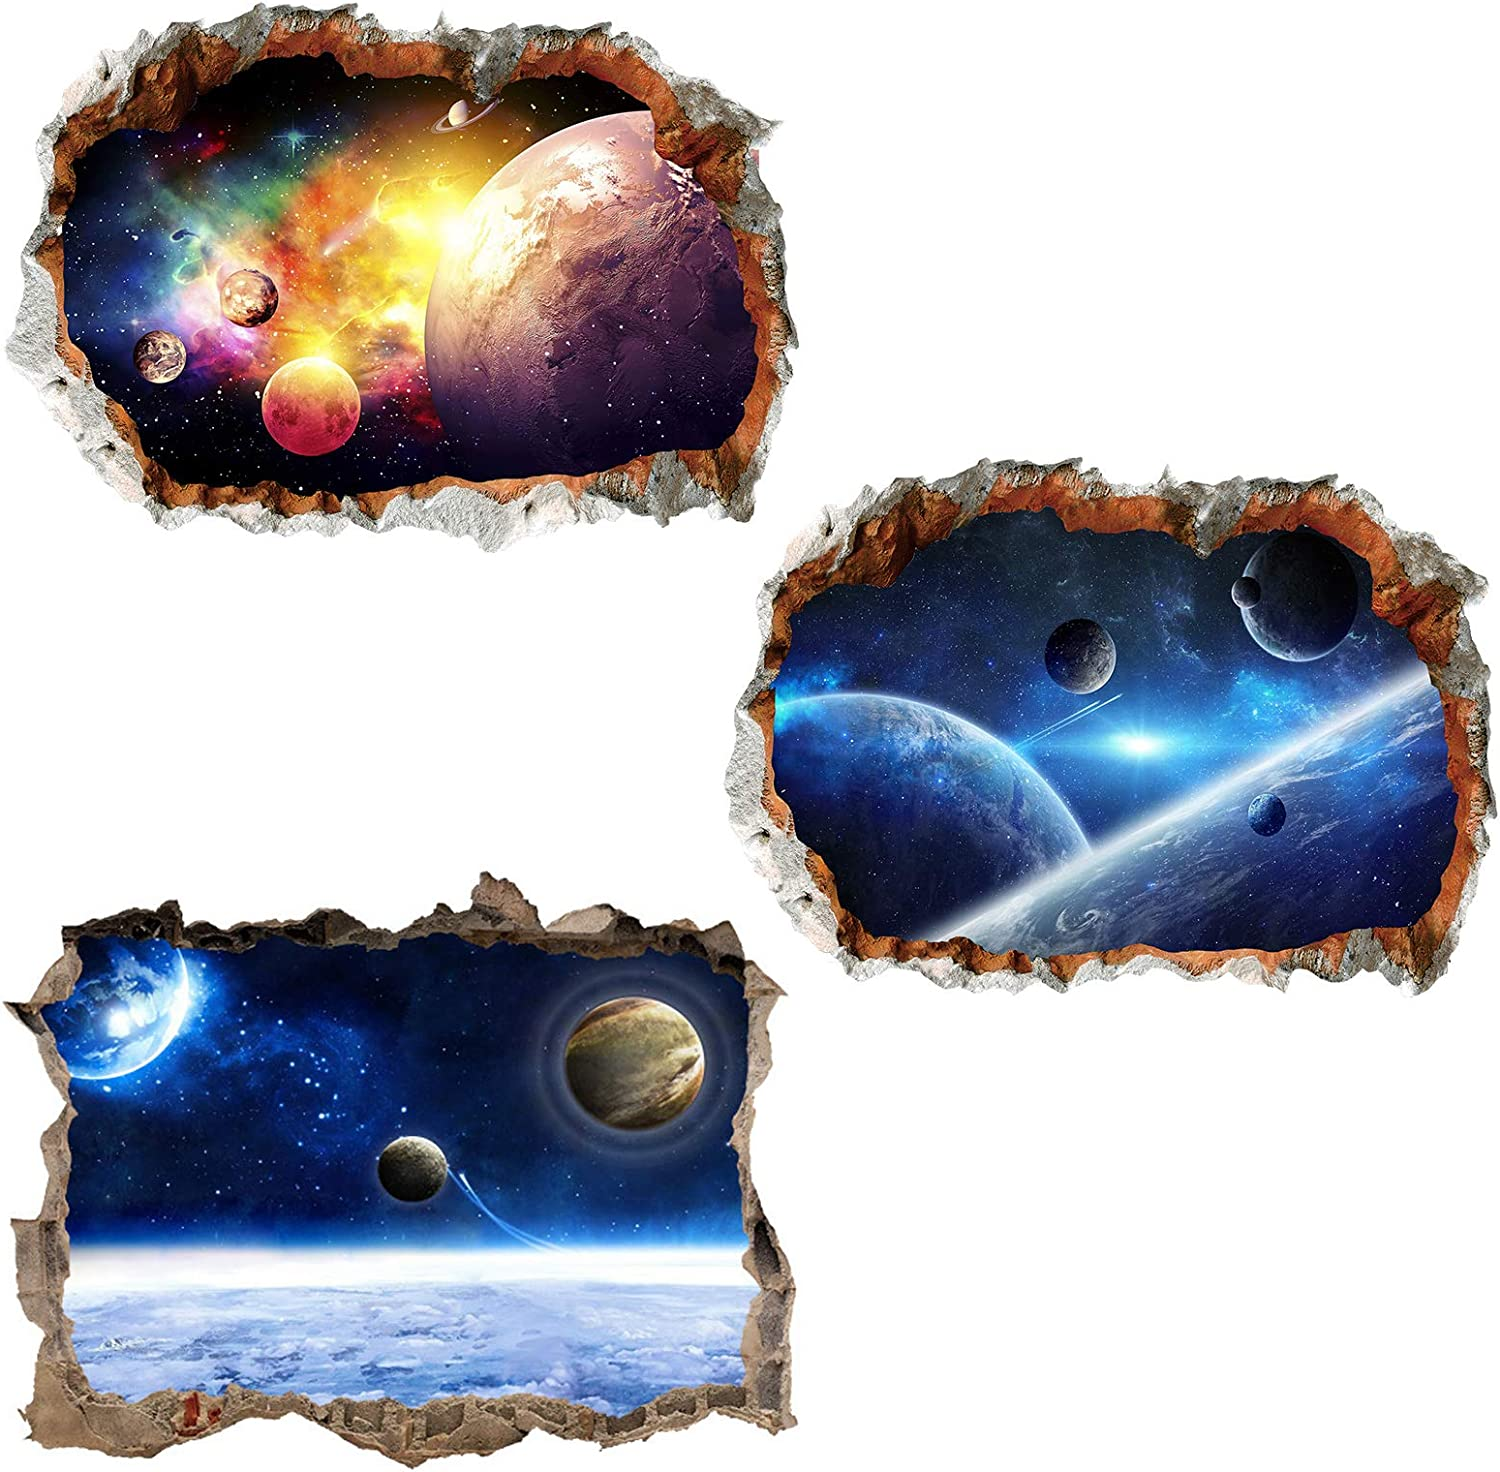 3 Pcs Universe Window Wall Stickers Galaxy 3D Decals Planet online shop Max 51% OFF